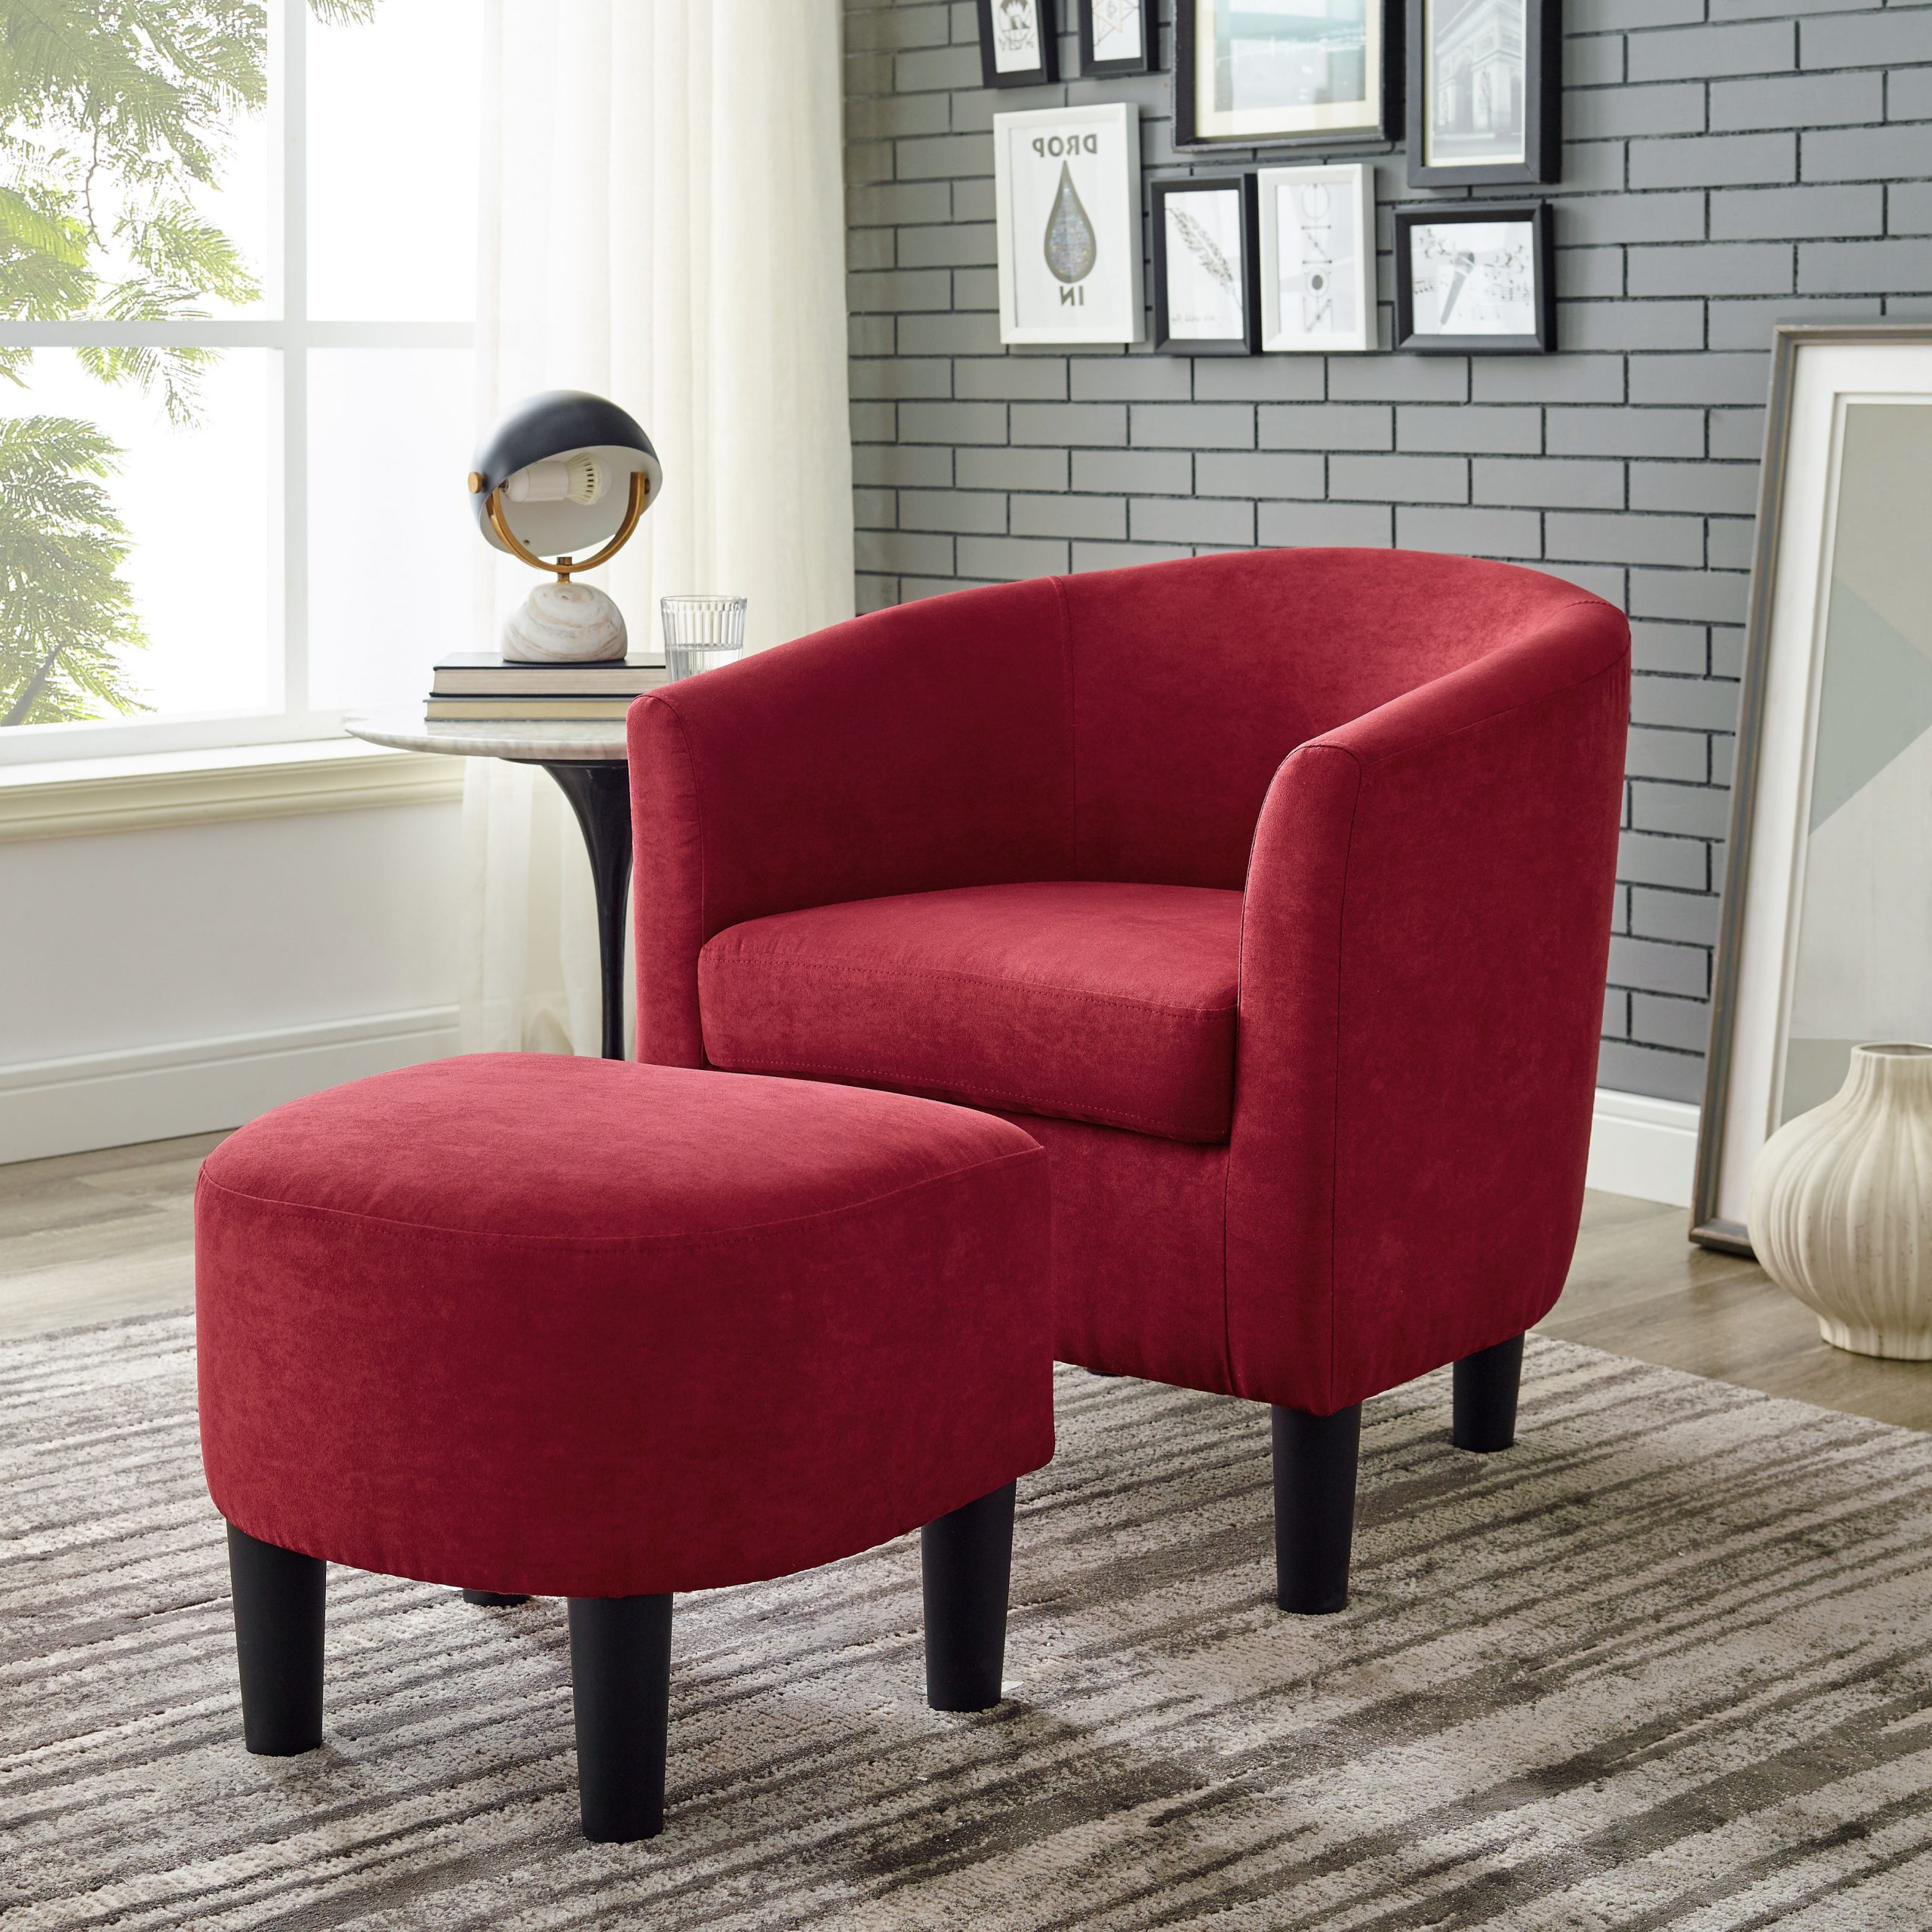 Well Liked Chaithra Barrel Chair And Ottoman Sets Pertaining To Beige & Red Accent Chairs You'll Love In (View 3 of 20)